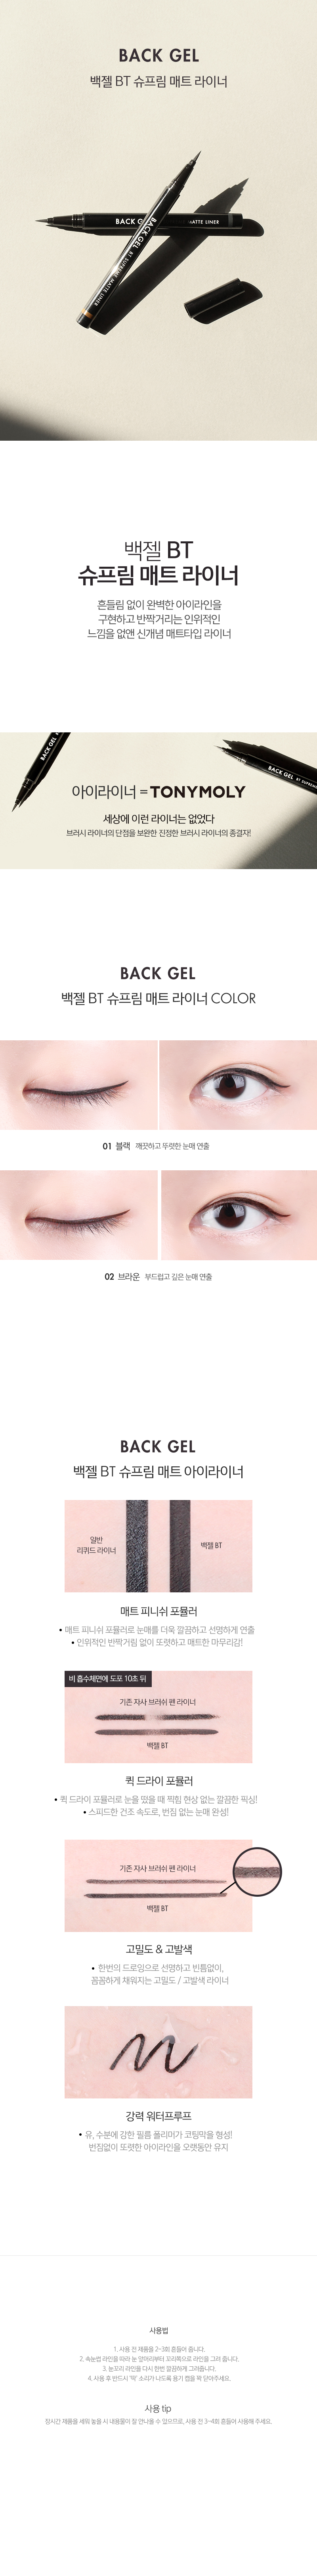 Tony Moly Back Gel BT Supreme Matte Liner 0.6g malaysia singapore indonesia